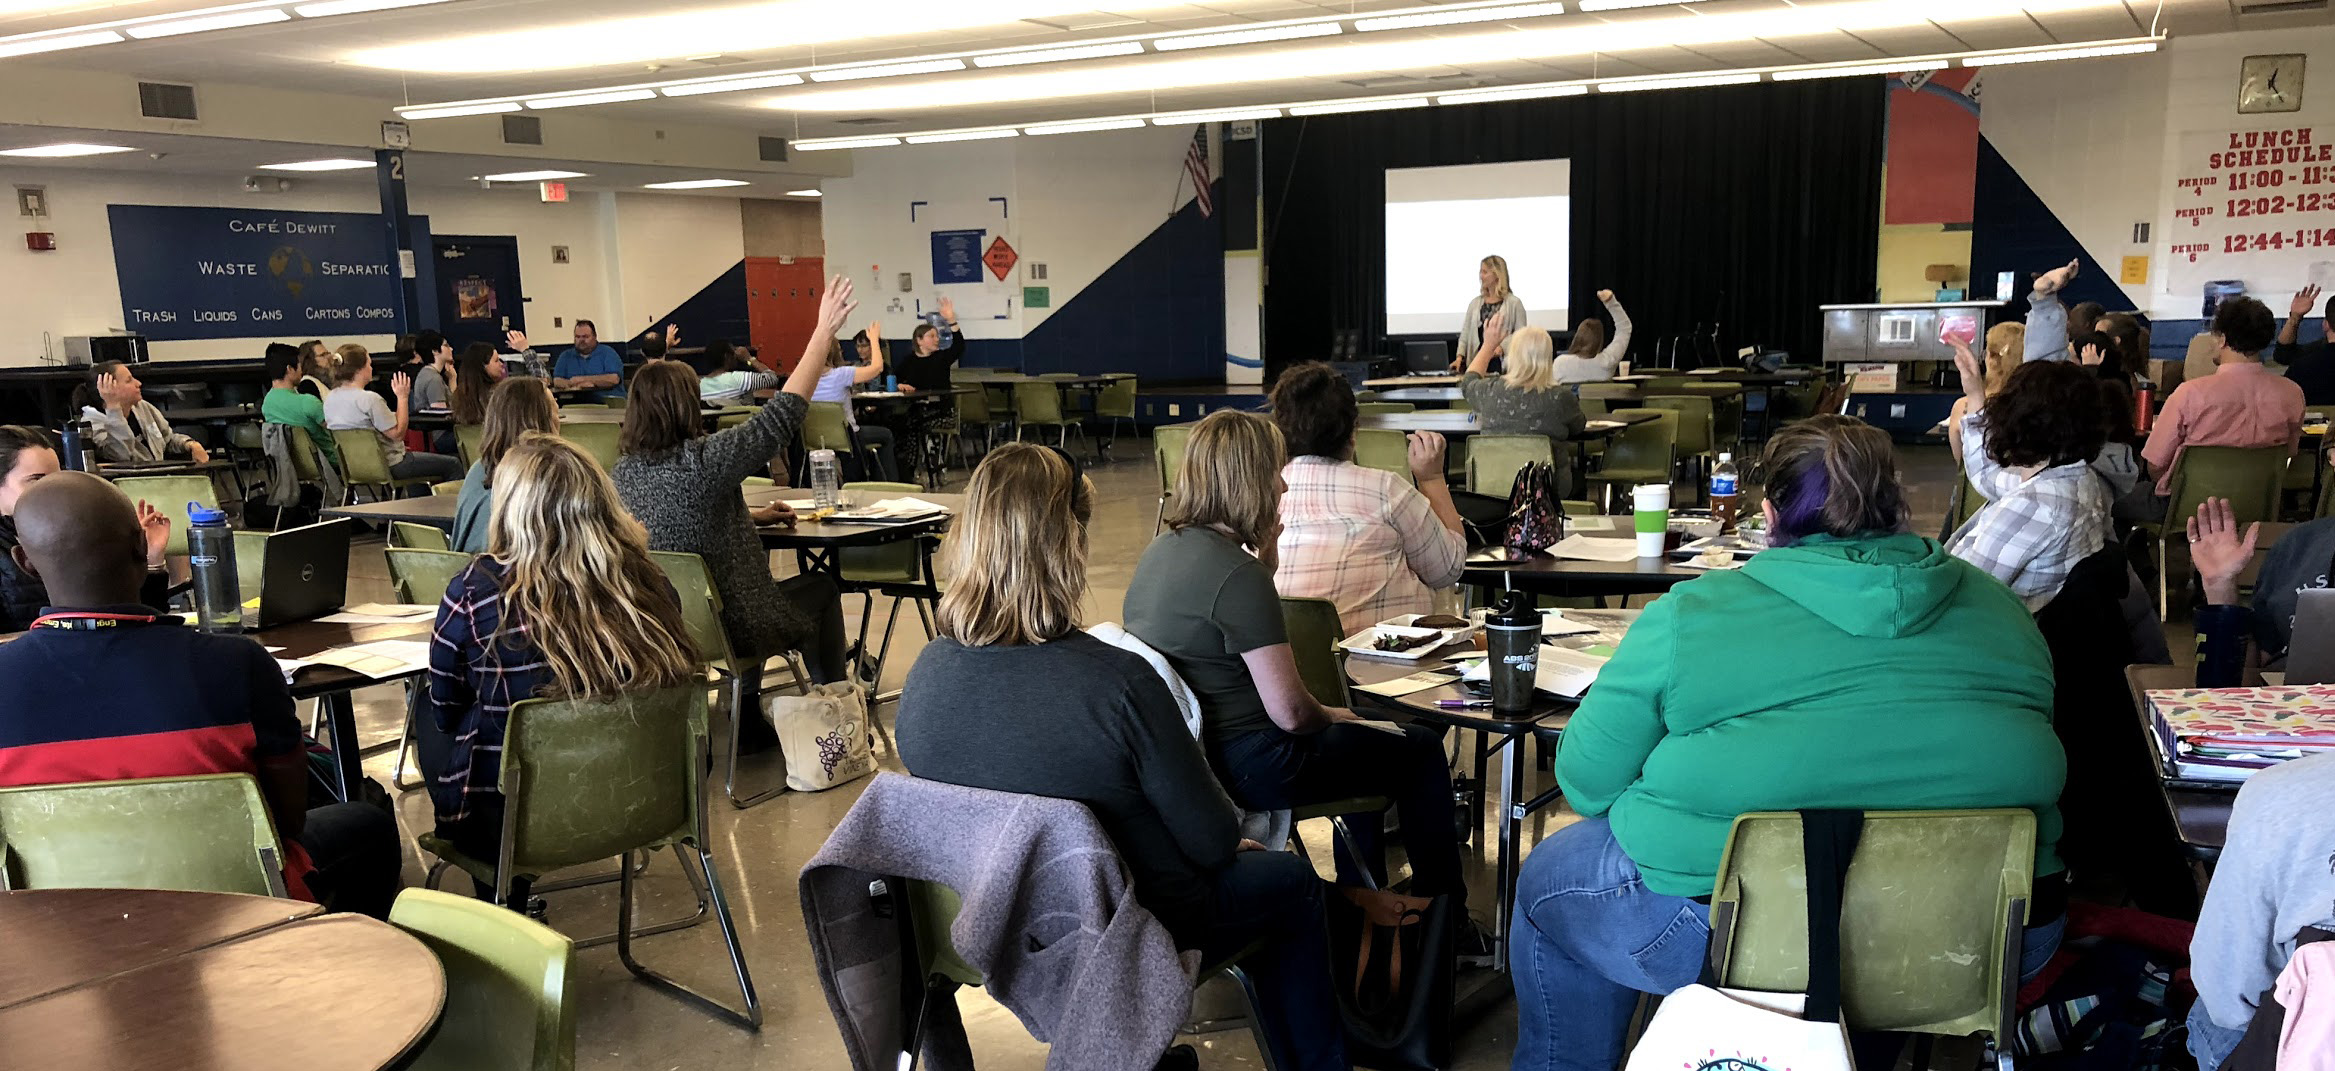 Jeannie leading a mindfulness workshop for school educators